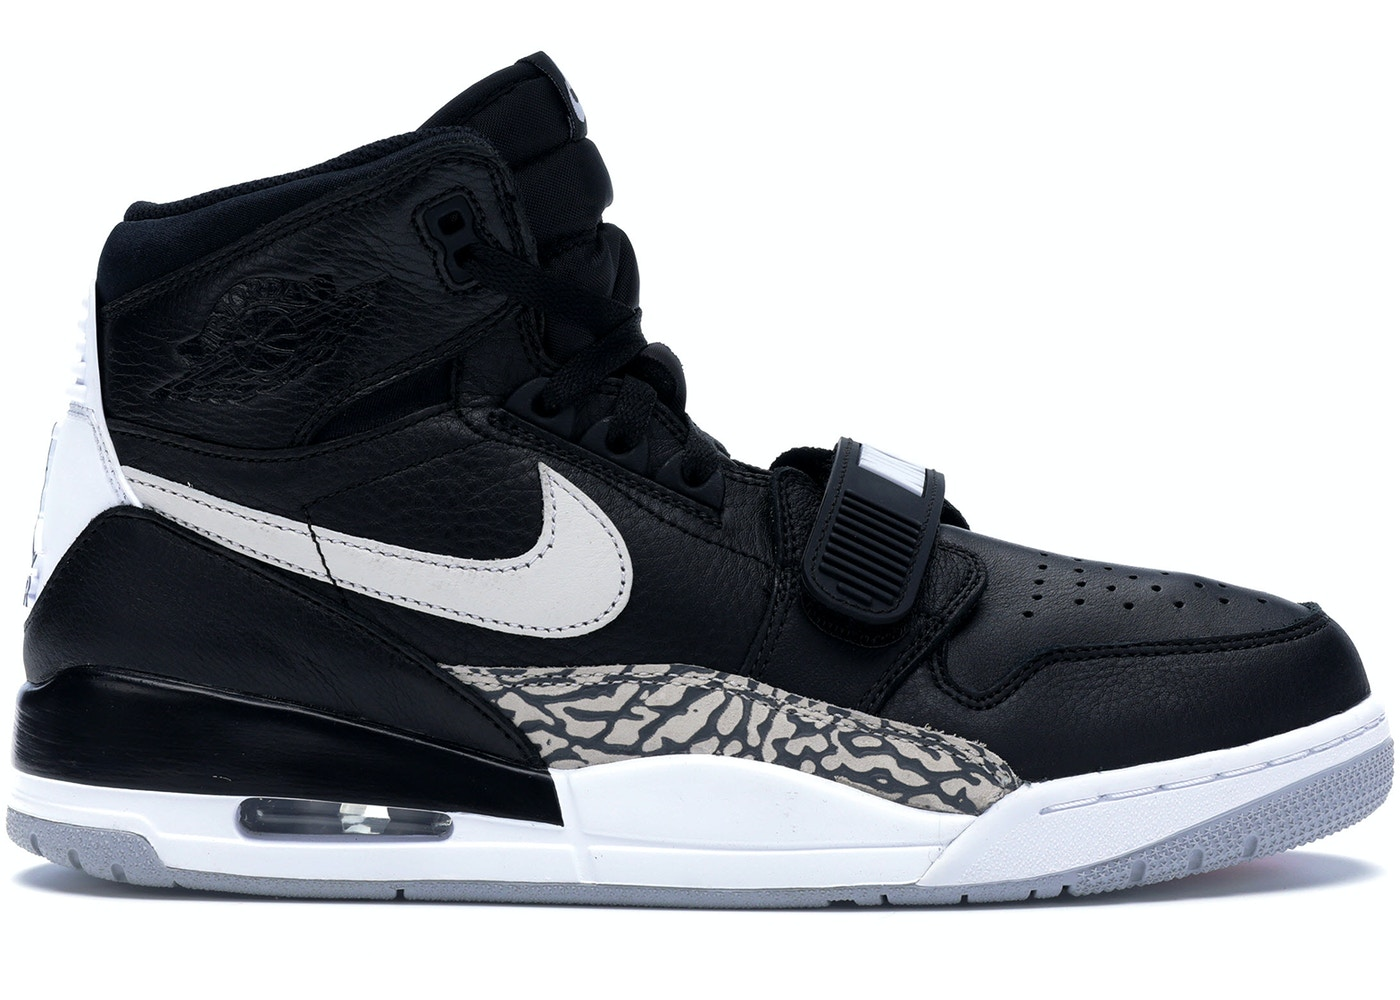 huge sale official site fashion styles Jordan Legacy 312 Black White - AV3922-001